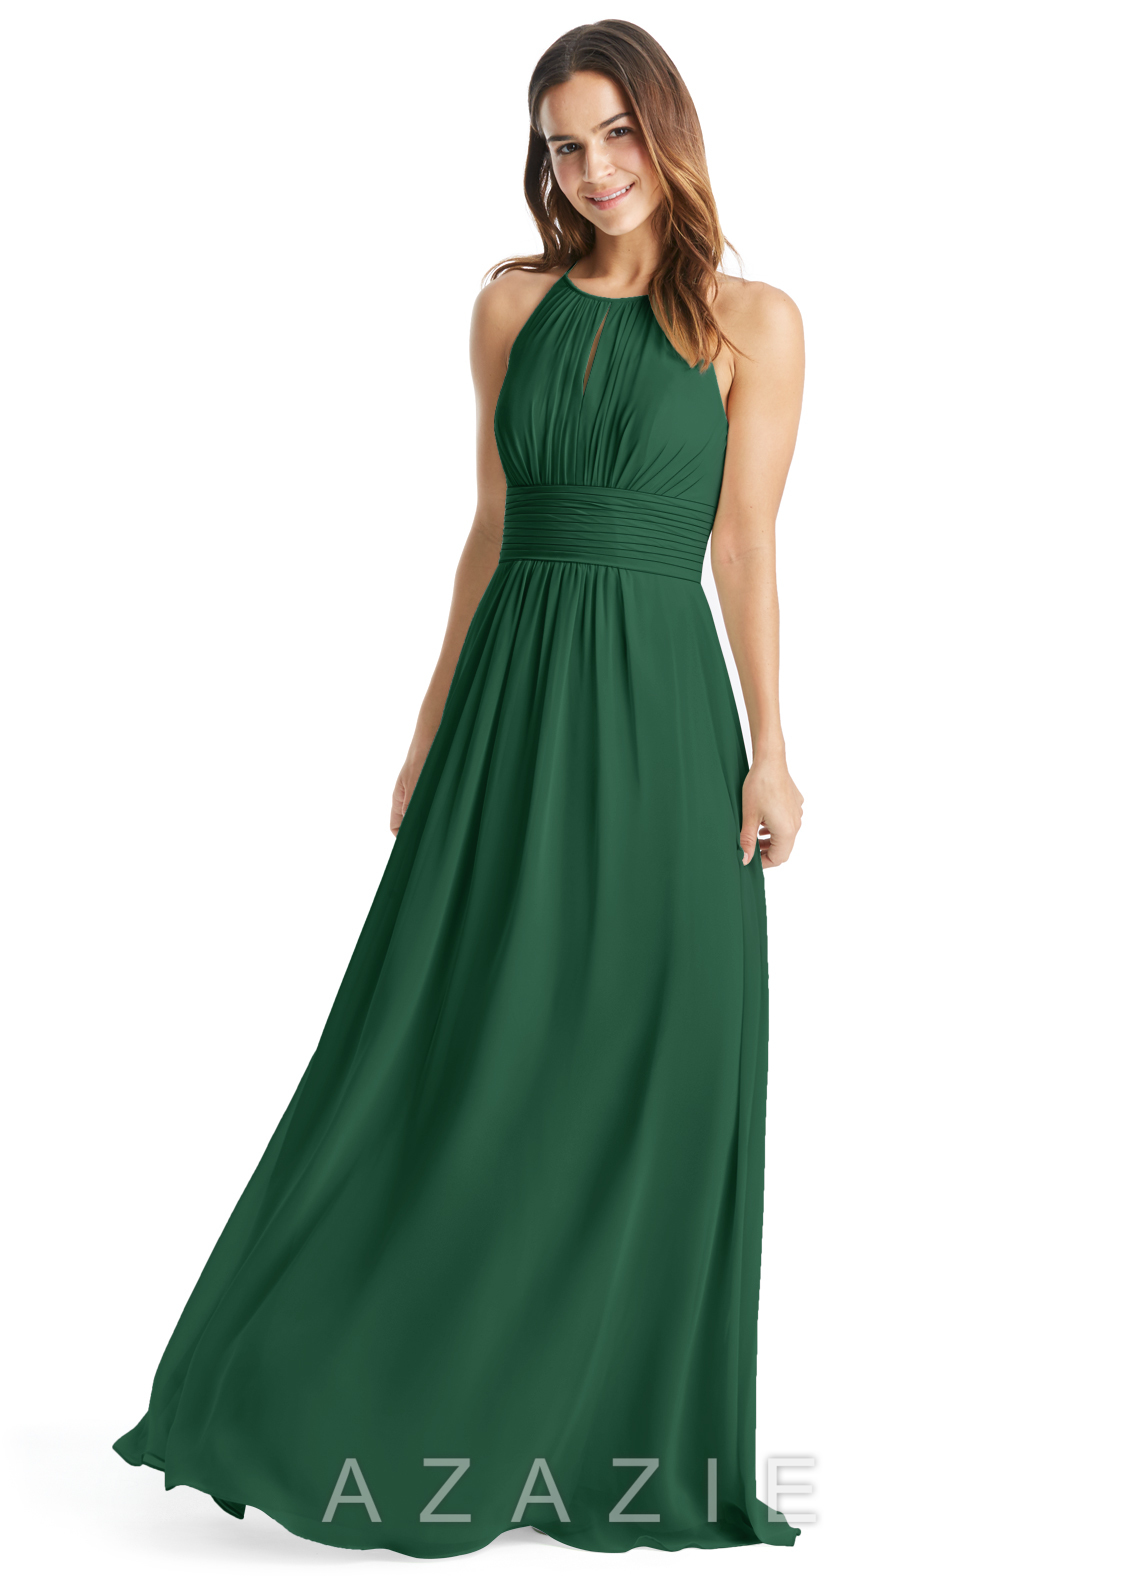 Make the Day Memorable with green bridesmaid dresses